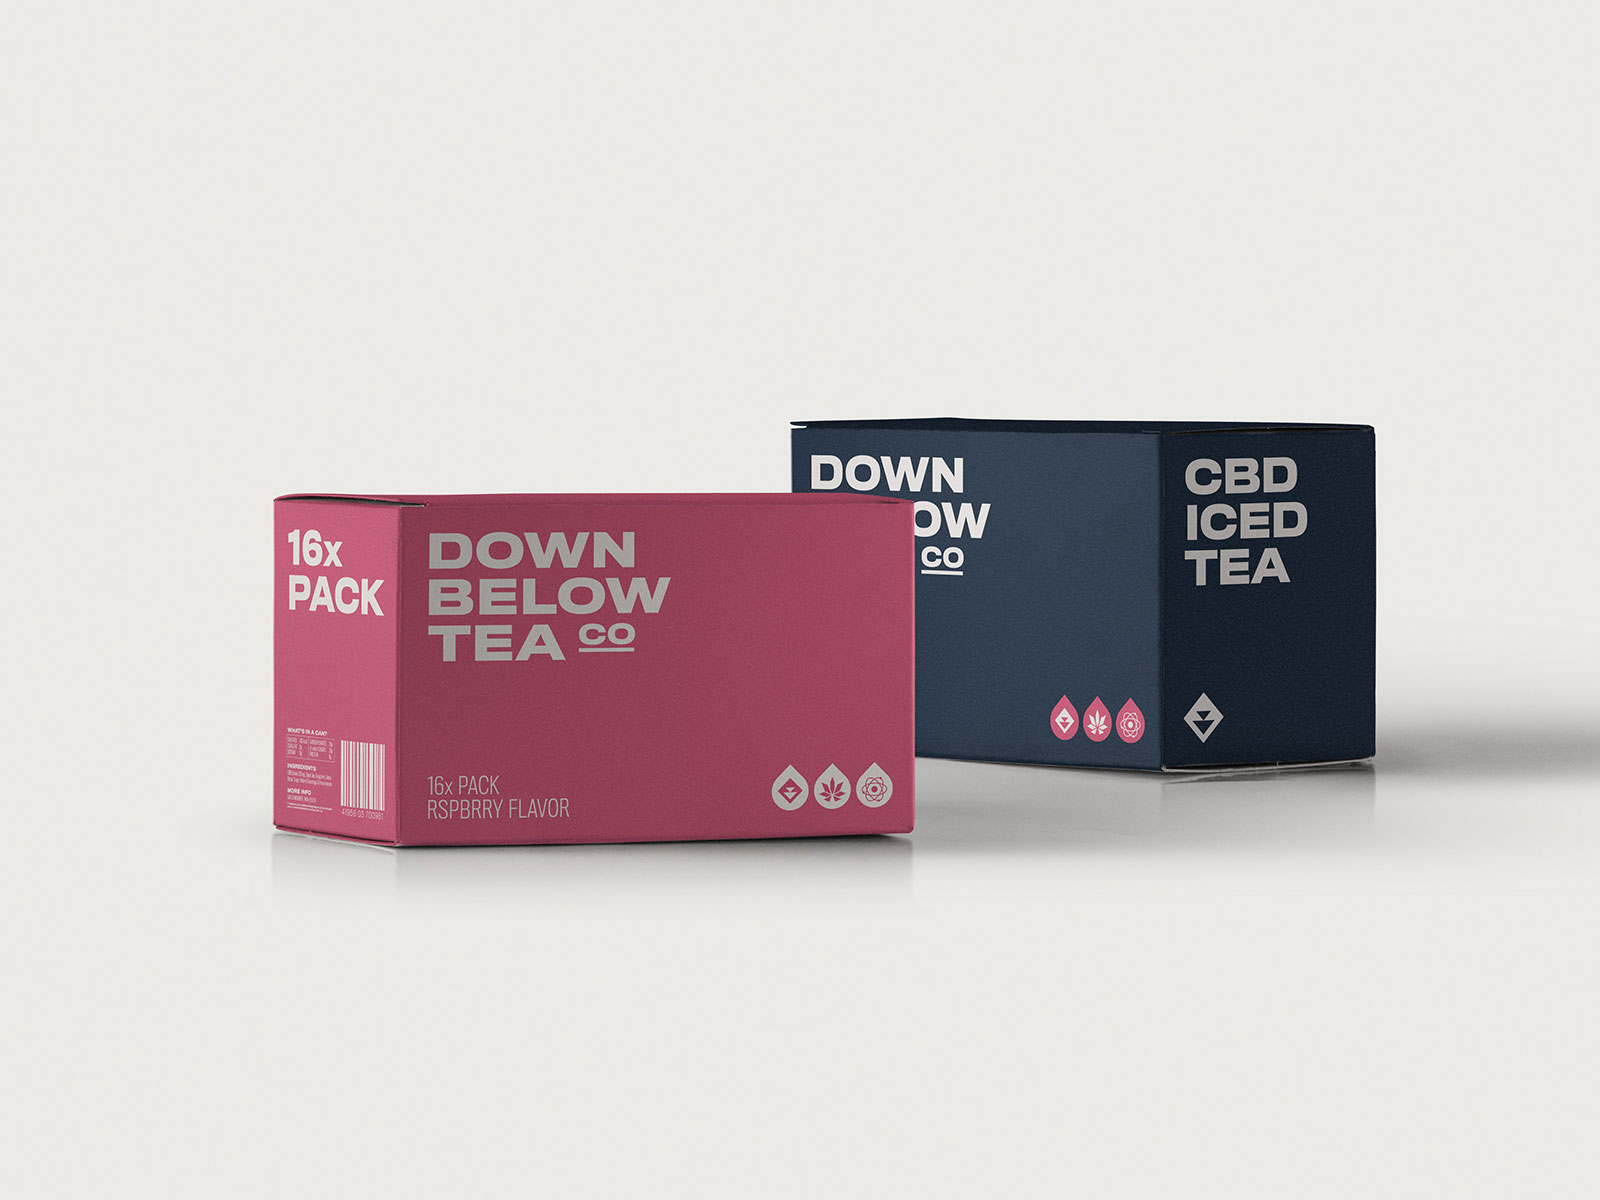 down below tea co box packaging for multiple cans of cbd iced tea visual identity by connor fowler cfowlerdesign